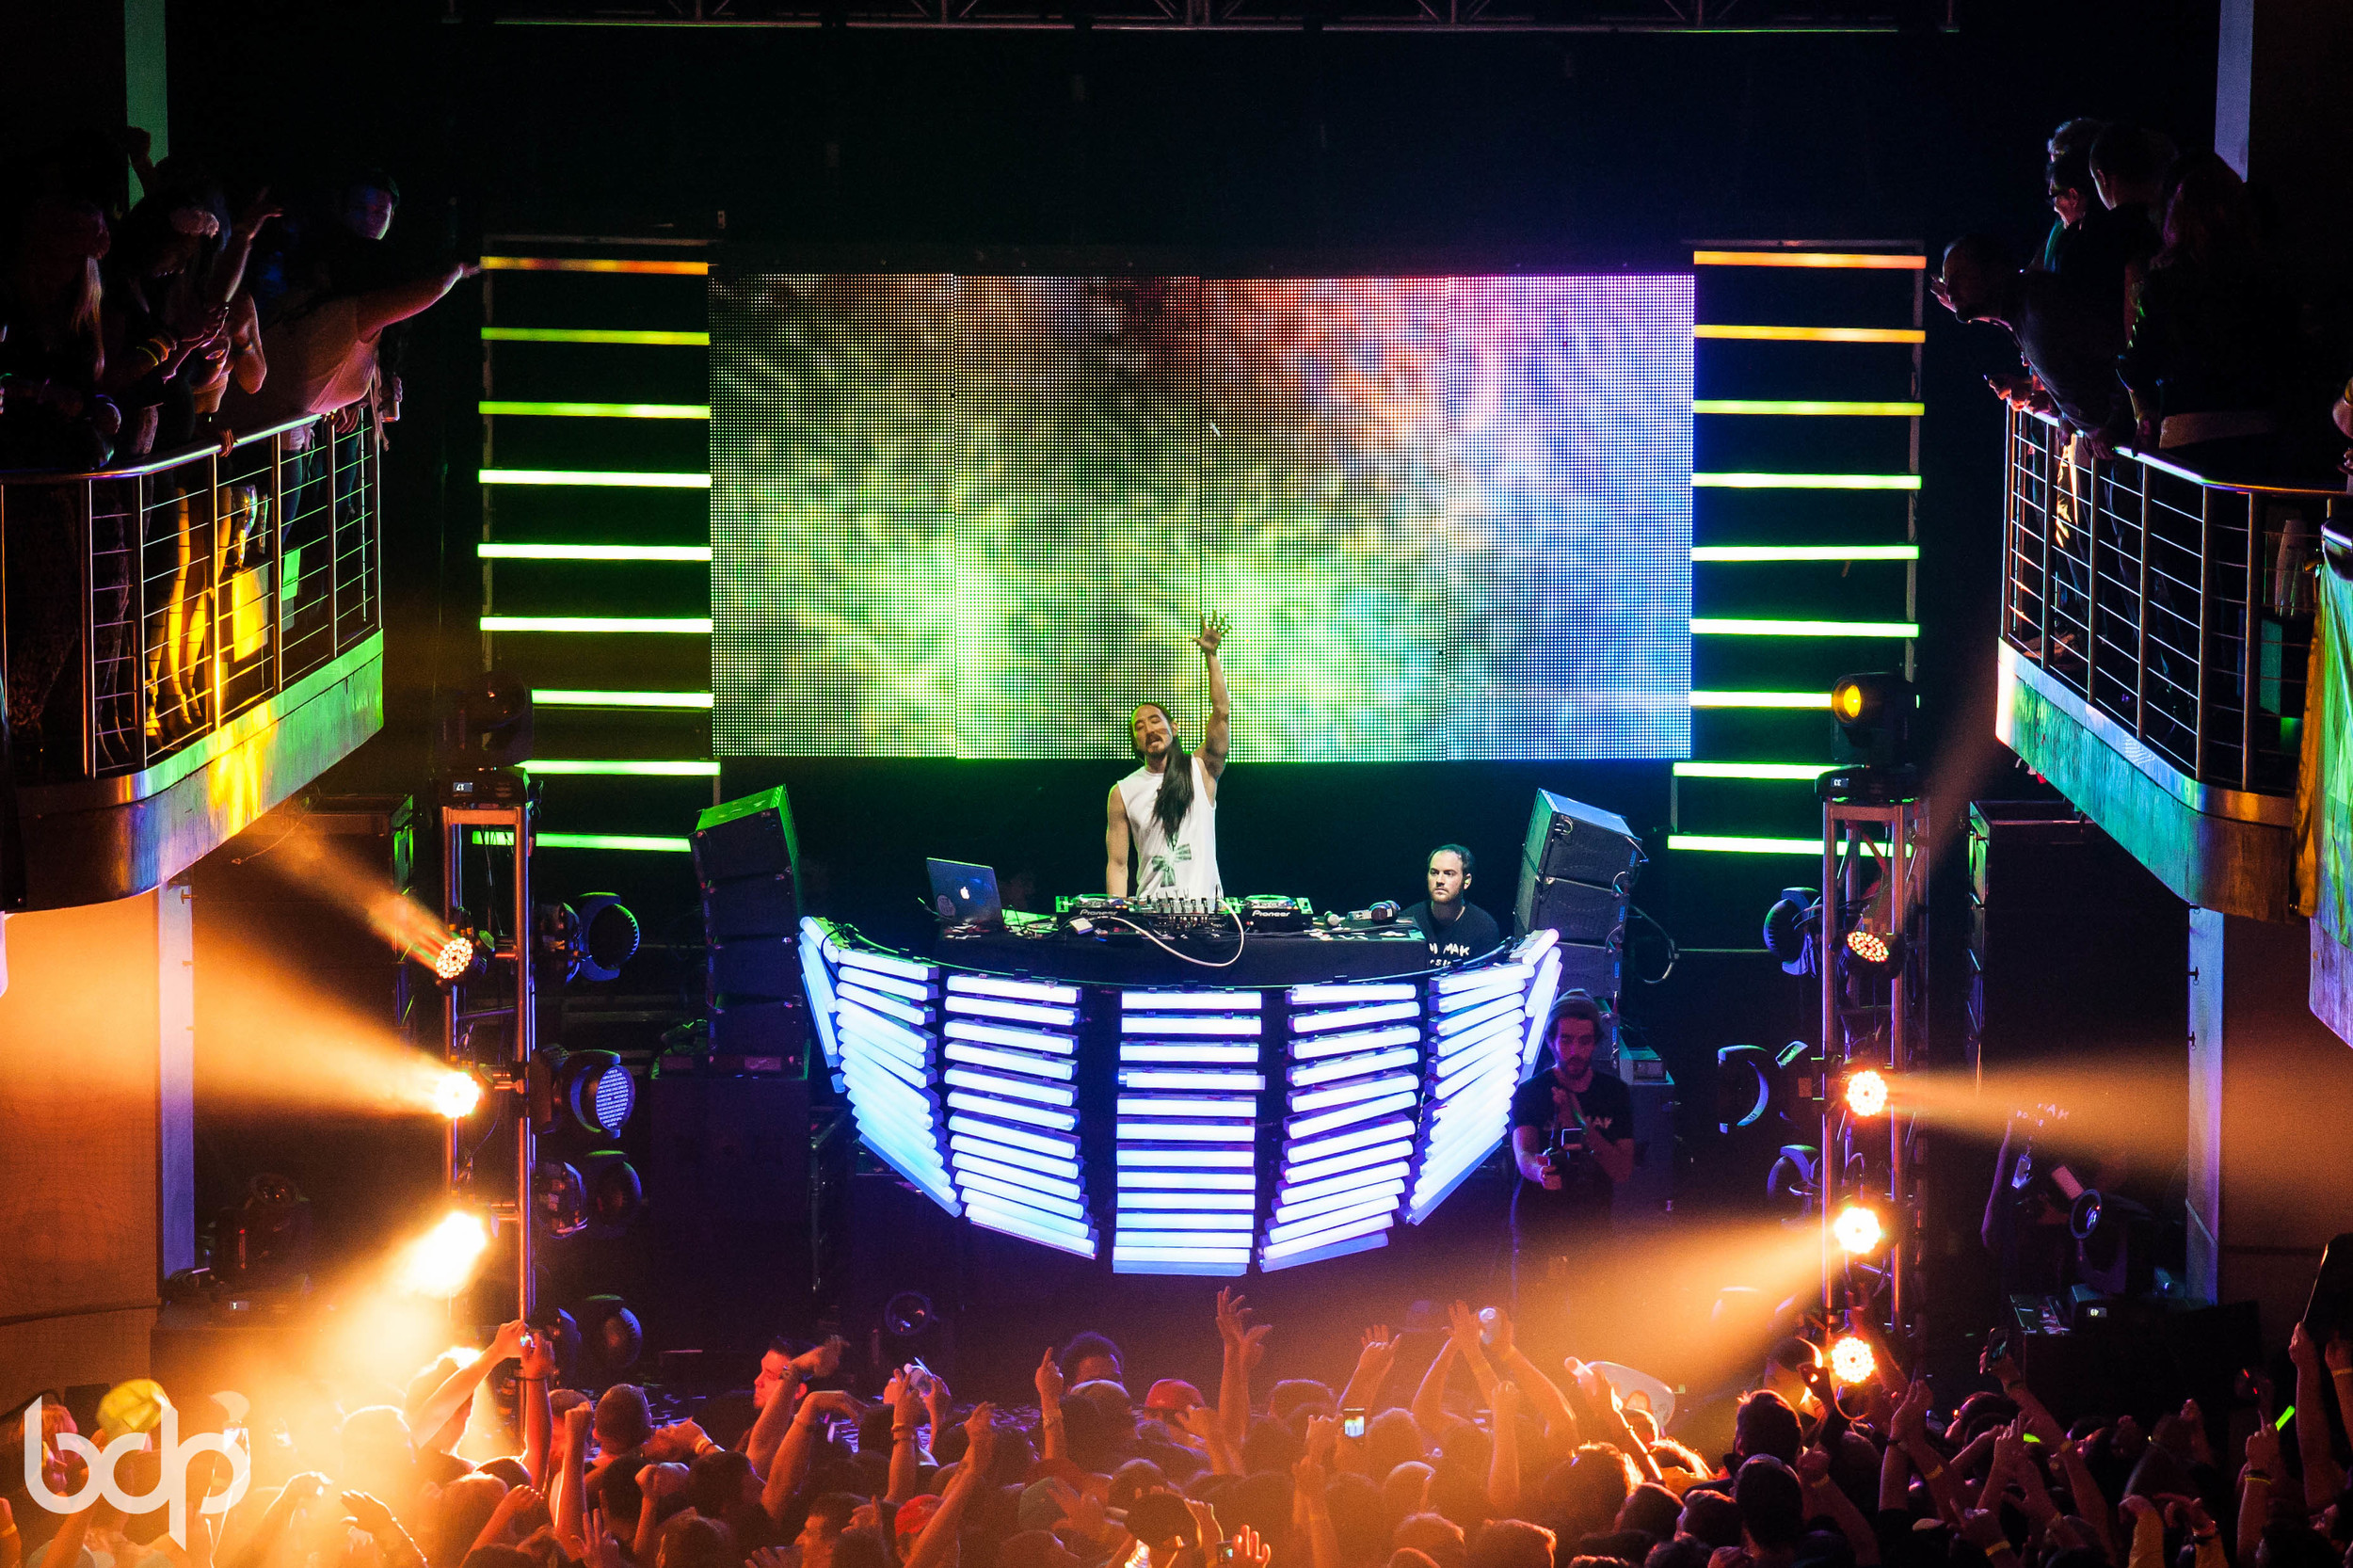 Aokify America Tour at Epic at Epic 110913 BDP-8.jpg